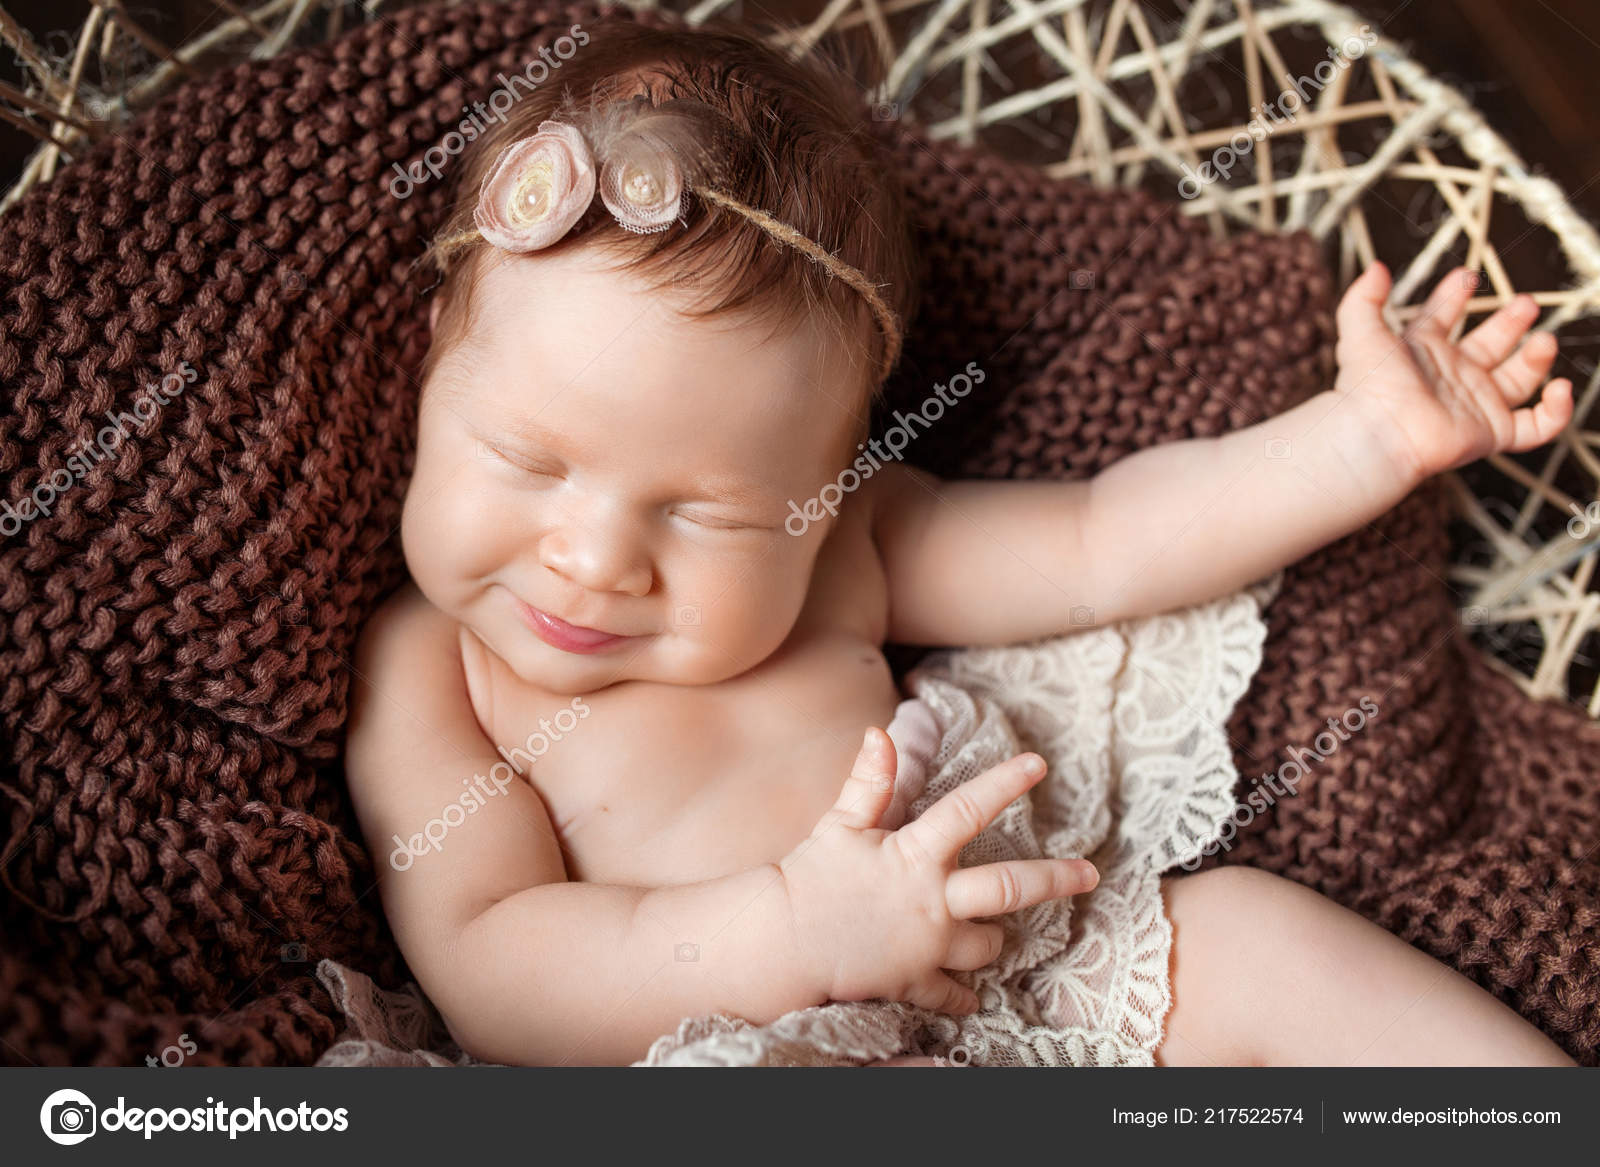 Sweet smiling newborn baby girl newborn girl 3 weeks old lying photo by liudmila fadzeyeva gmail com